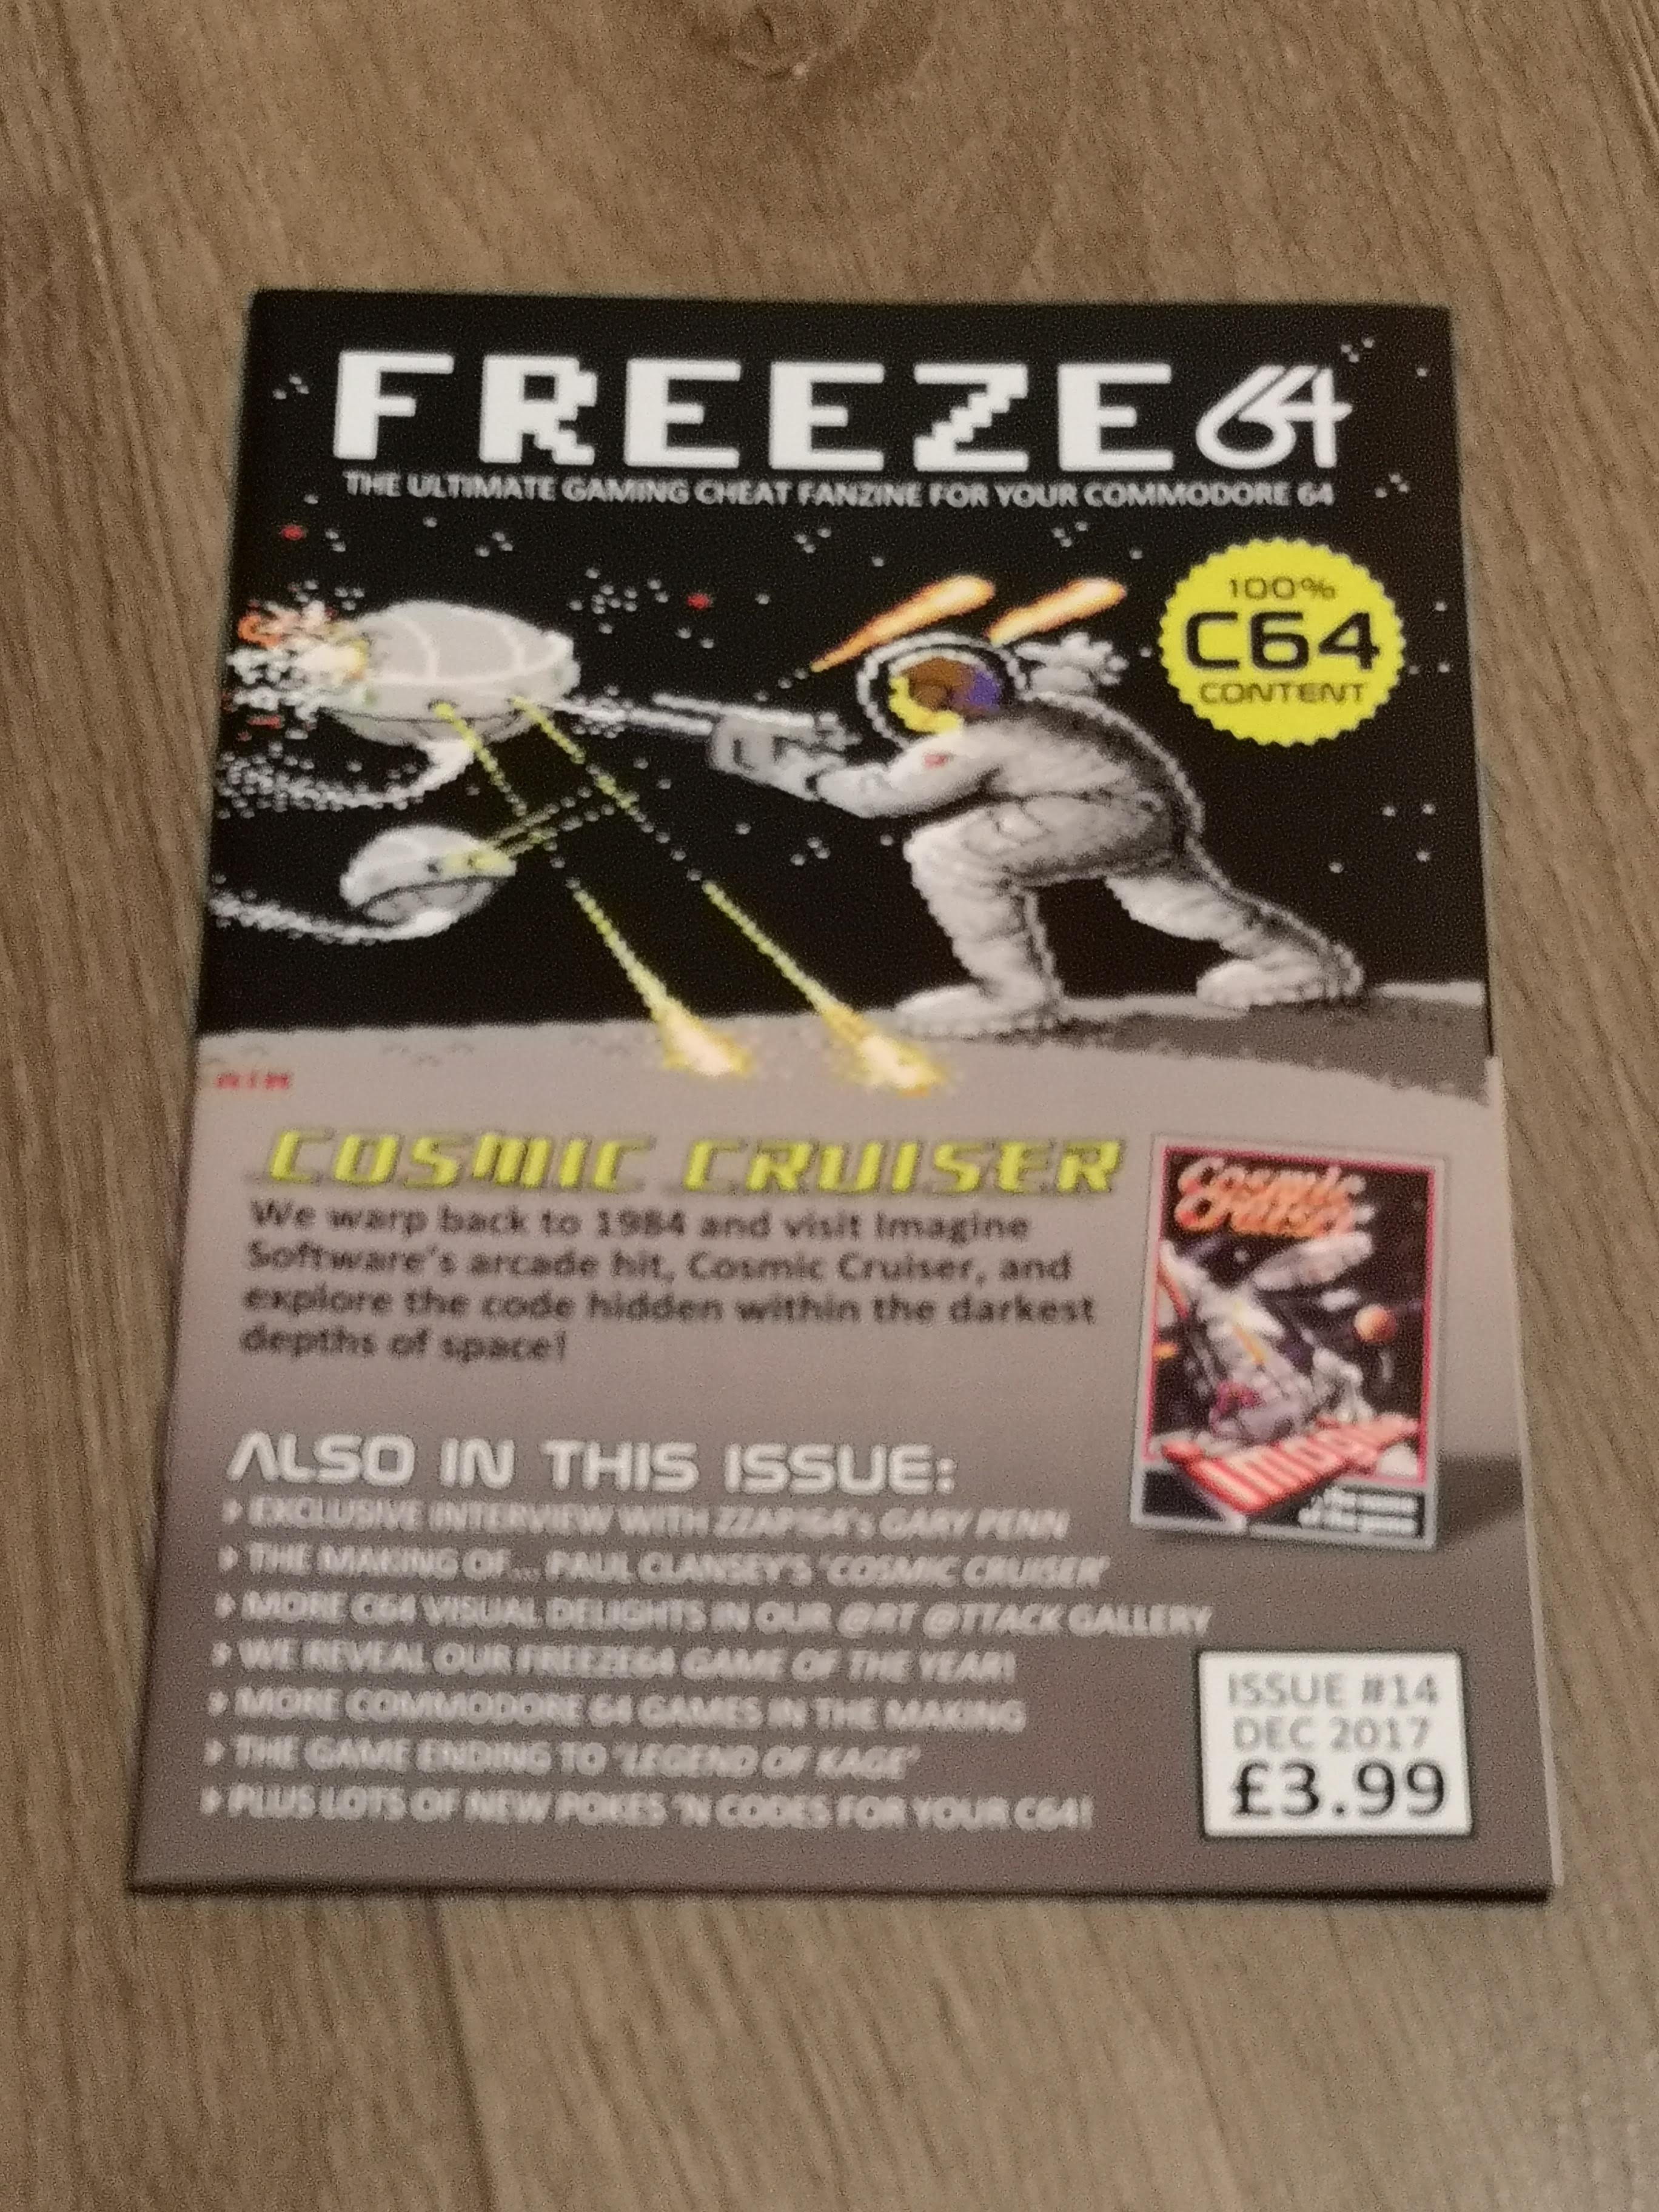 Commodore Magazines available in 2019 - Lyonsden Blog